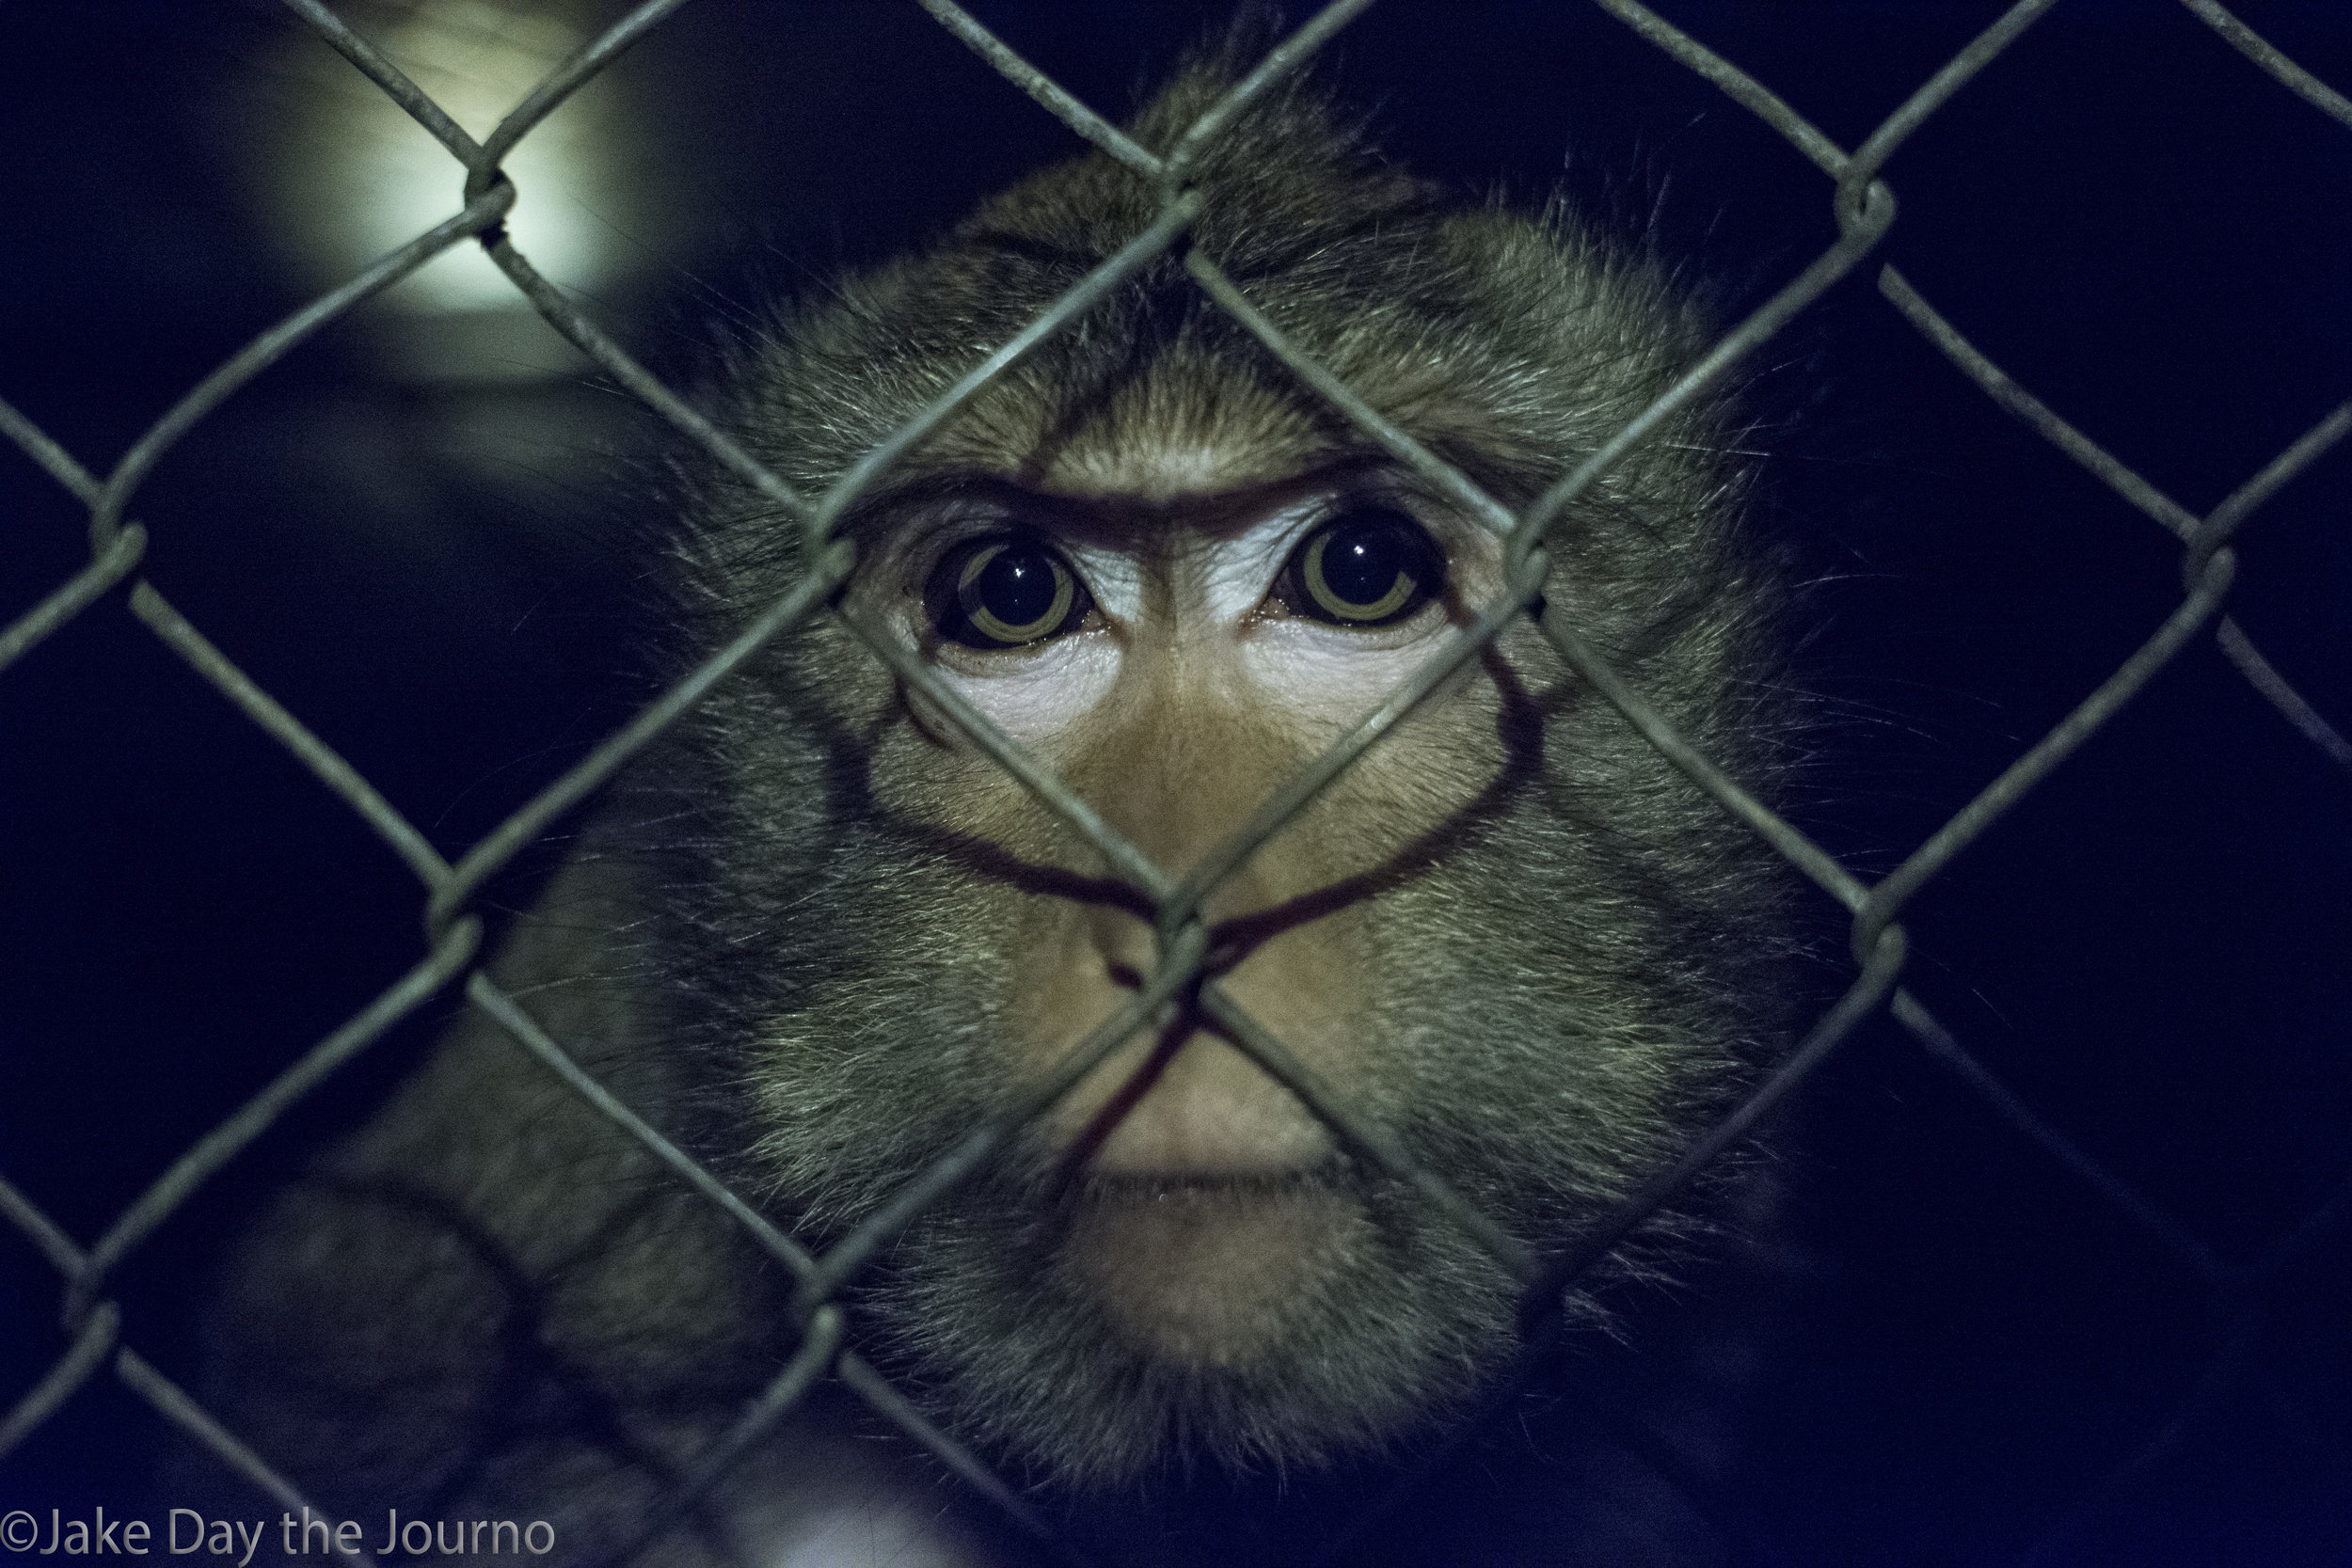 A Long Tailed Macaque peers through a cage at Wildlife Alliance's Cardamom Mountains Release Centre on the night of 08/01/2018 by Jake Day. This Macaque was attacked by a wild troop of monkeys upon its release and now lives in an enclosure with its baby for safety. Releasing wild animals is a challenge and rarely a straightforward process.